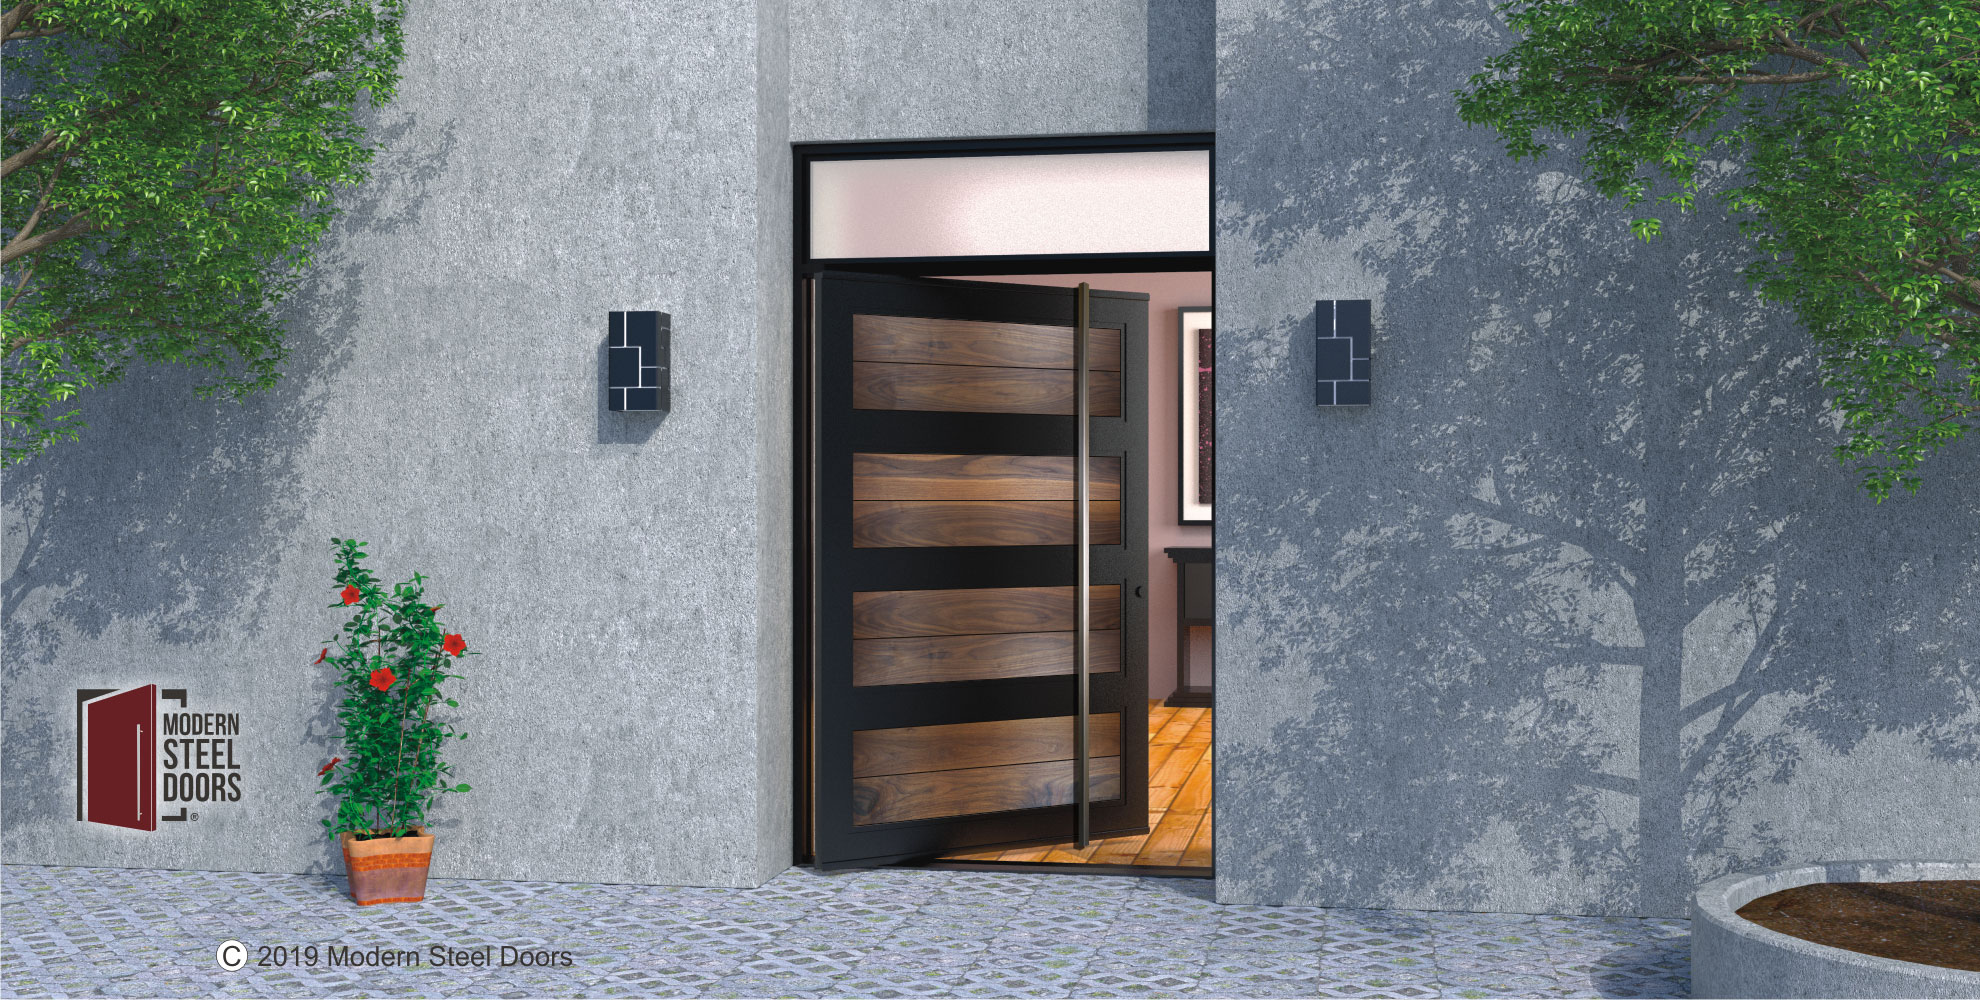 WALNUT-PARAGON-DOOR-WITH-SQUARE-BRUSHED-STAINLESS-DOOR-LENGTH-PULLS-&-TRANSOM